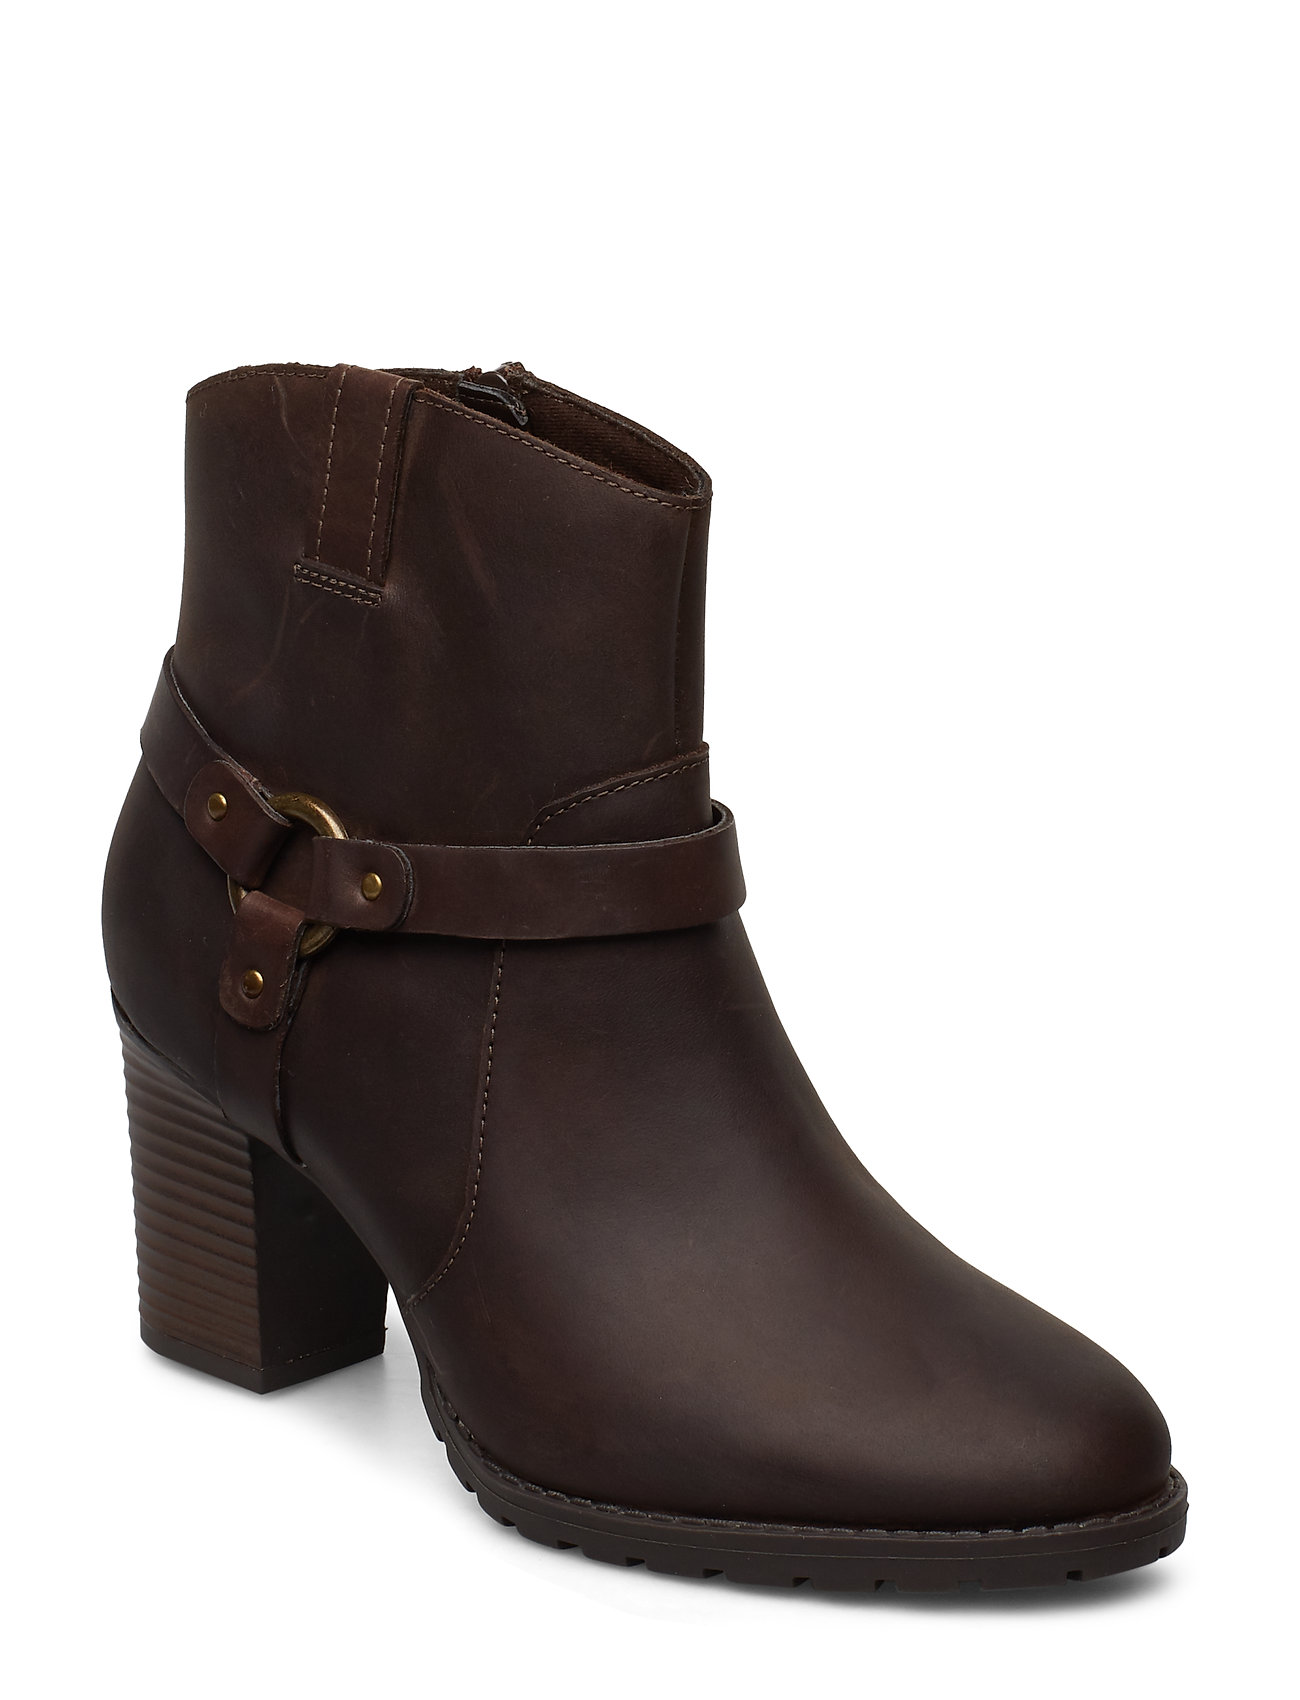 CLARKS Verona Rock Shoes Boots Ankle Boots Ankle Boots With Heel Braun CLARKS